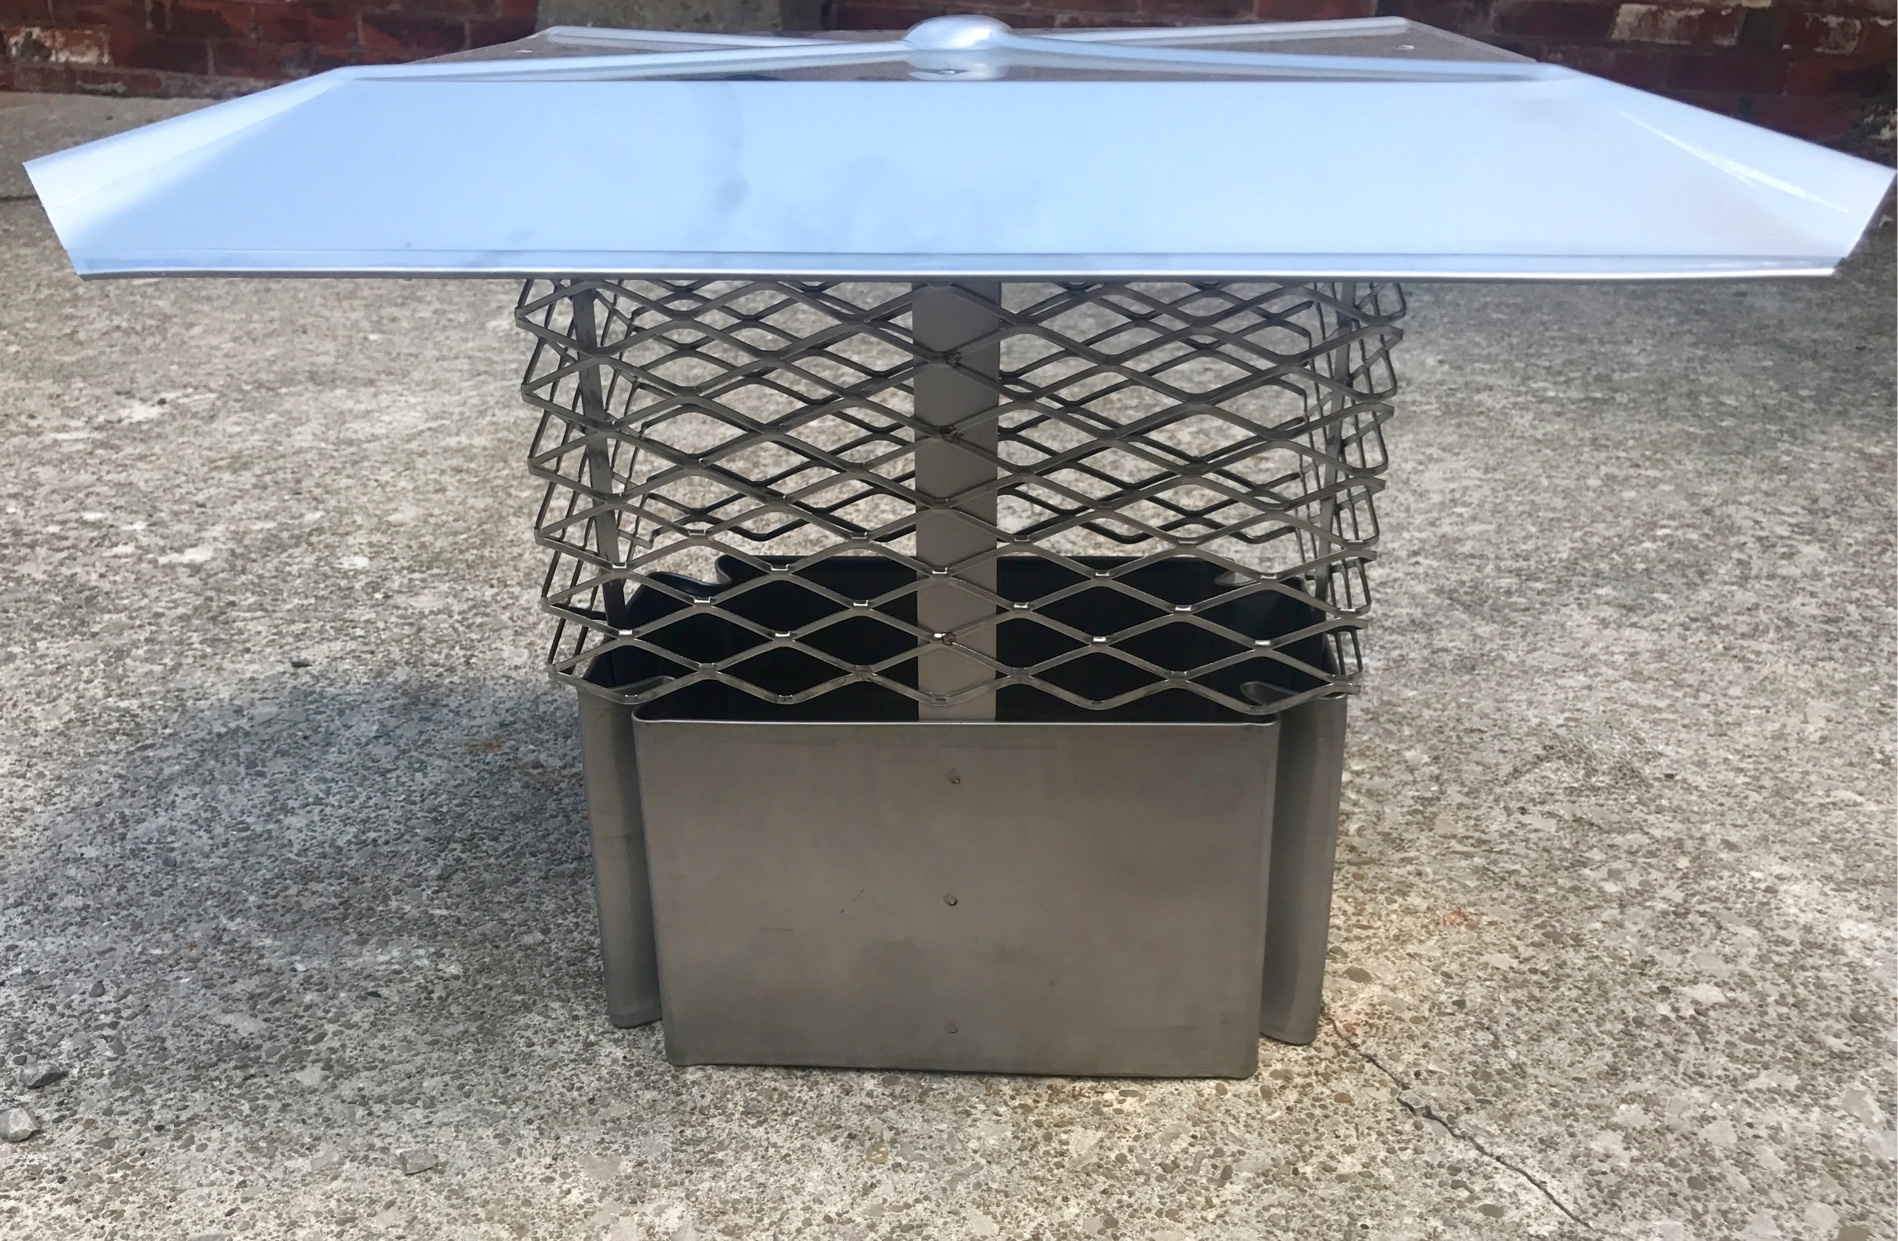 Stainless steel chimney covers installed to keep rain and animals out, guaranteed.